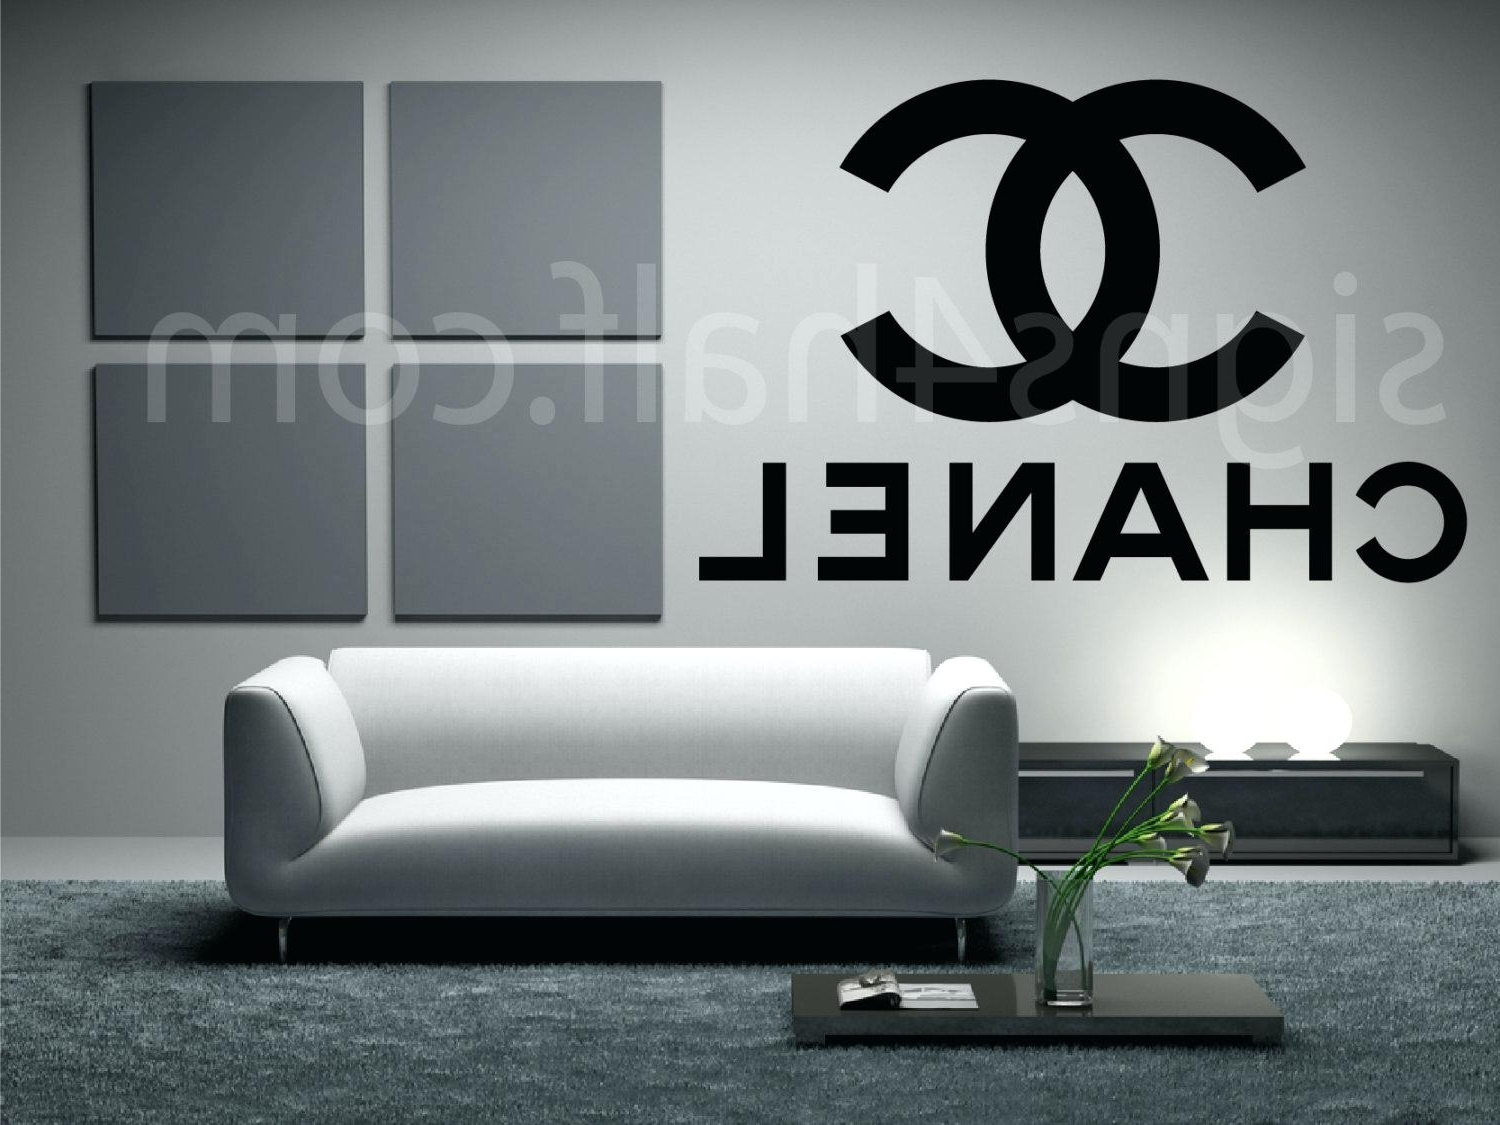 Chanel Wall Decor In Latest Coco Chanel Wall Decal – Gutesleben (View 15 of 15)